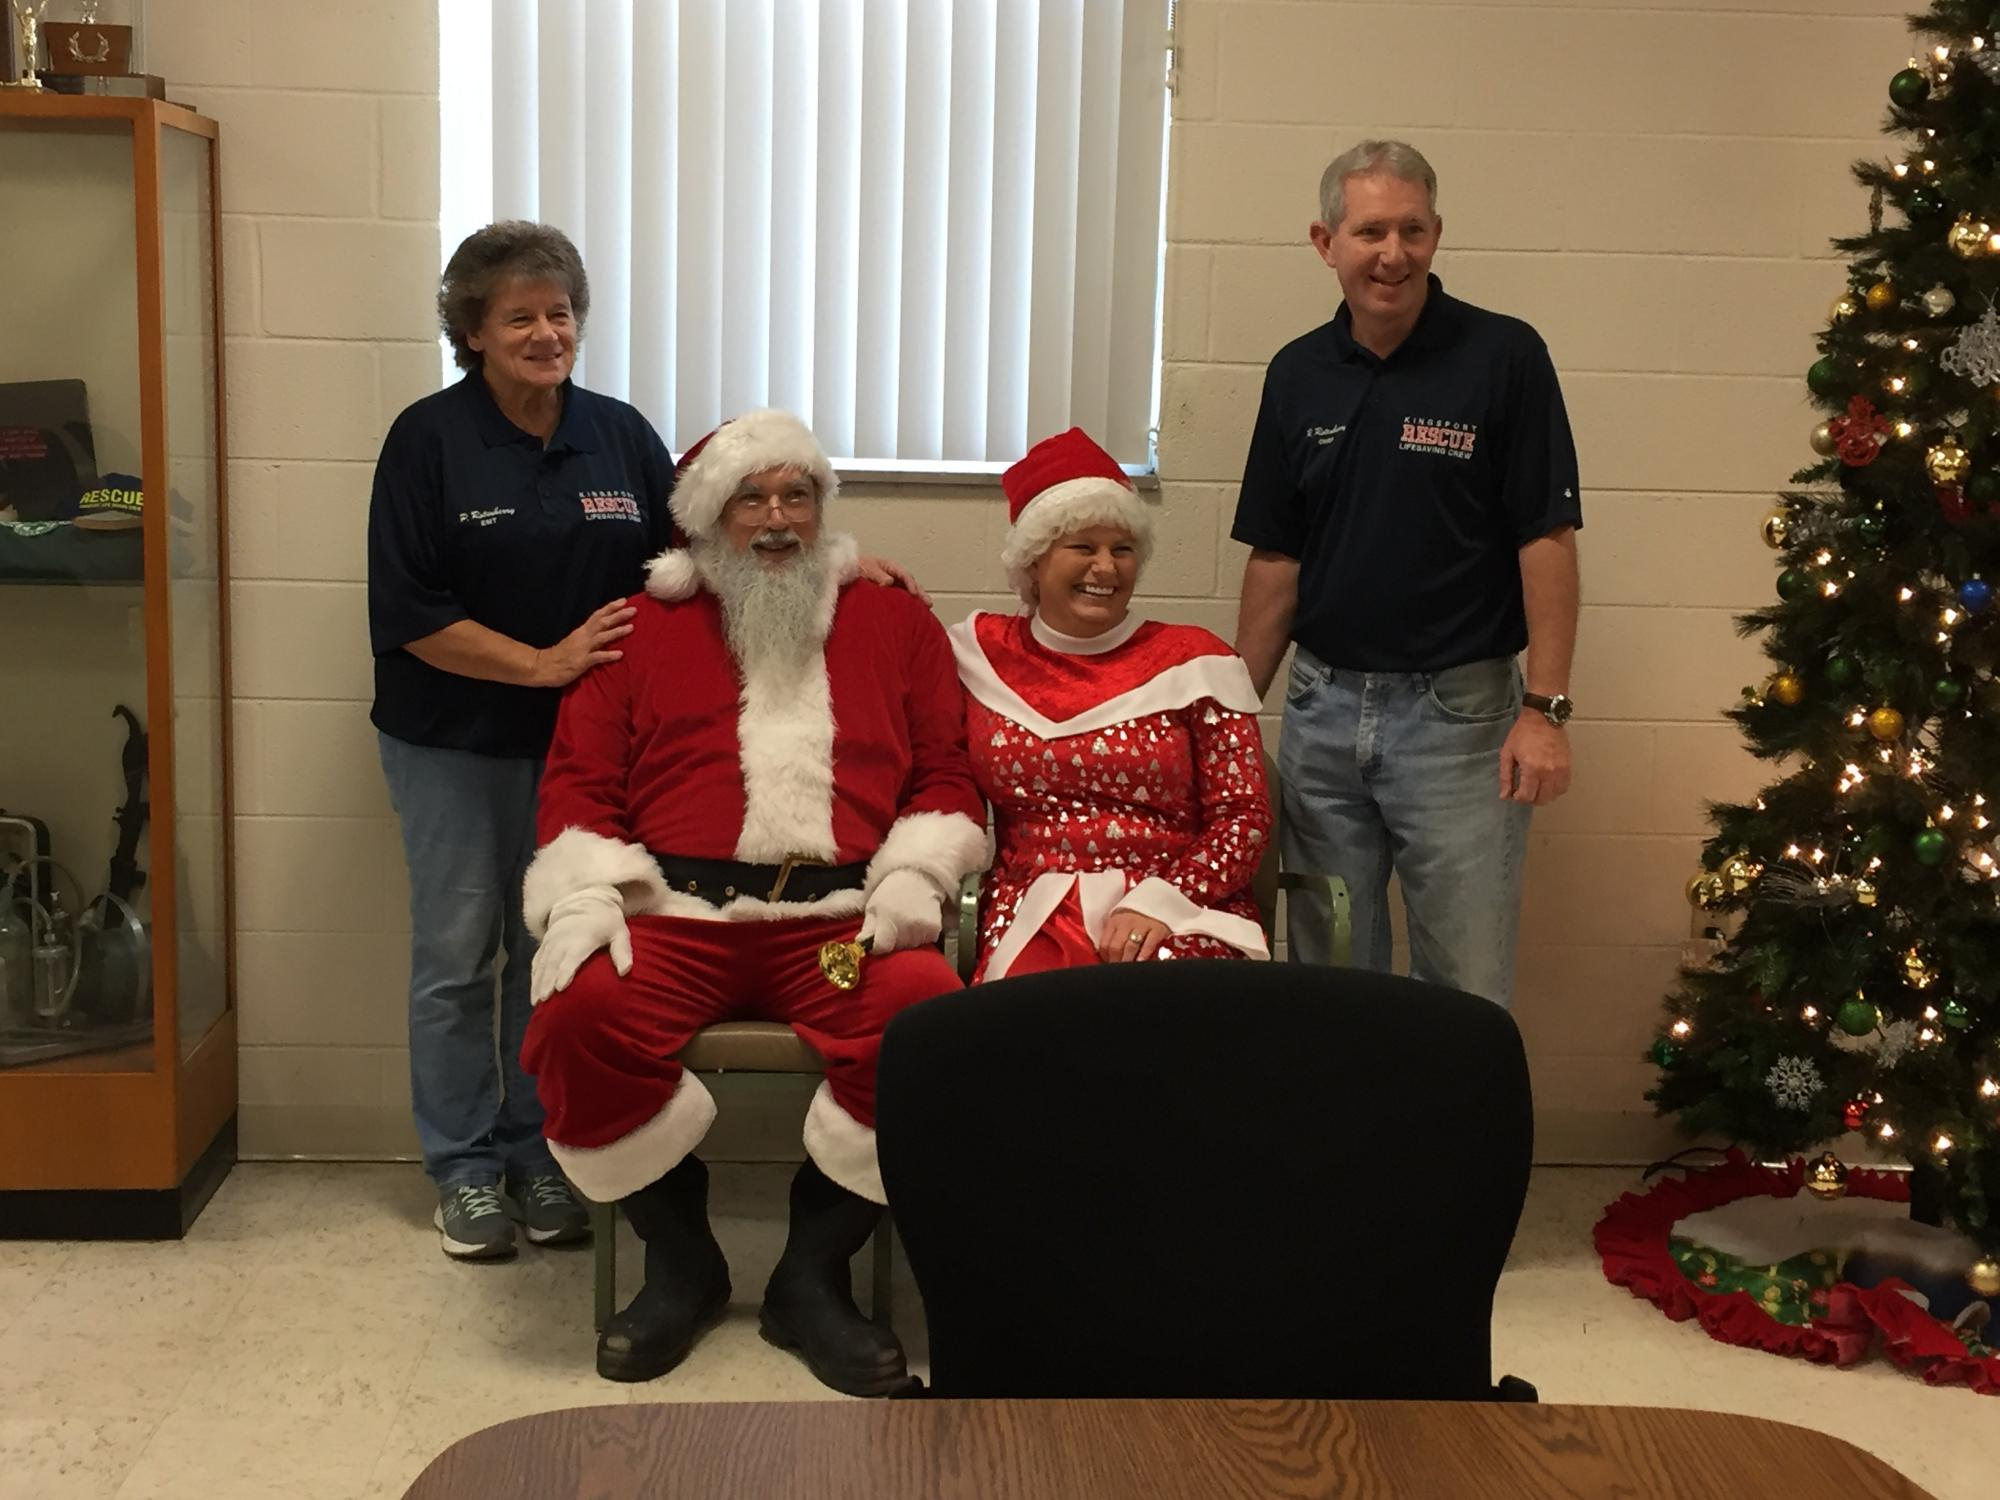 Chief Rusty Rotenberry and Patty Rotenberry with Mr. and Mrs. Clause.